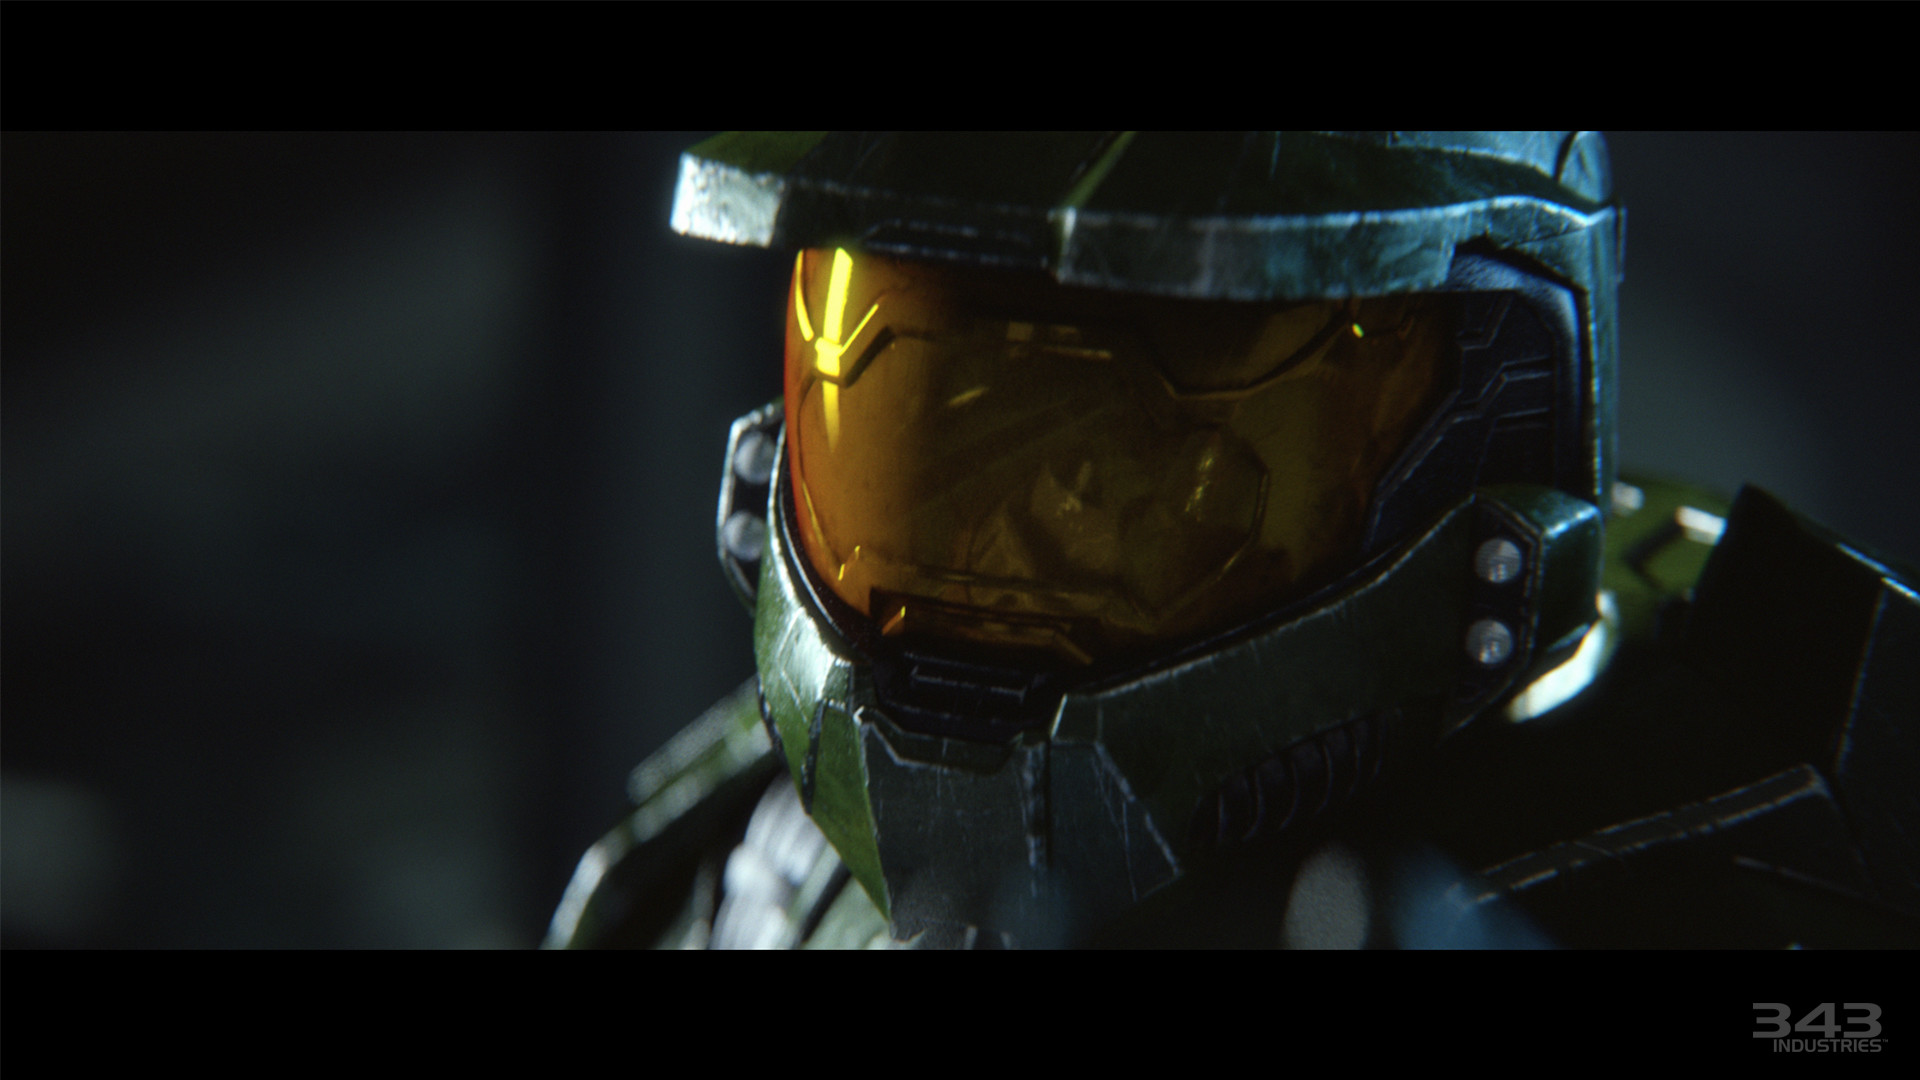 … sdcc-2014-halo-2-anniversary-cinematic-looking-forward …